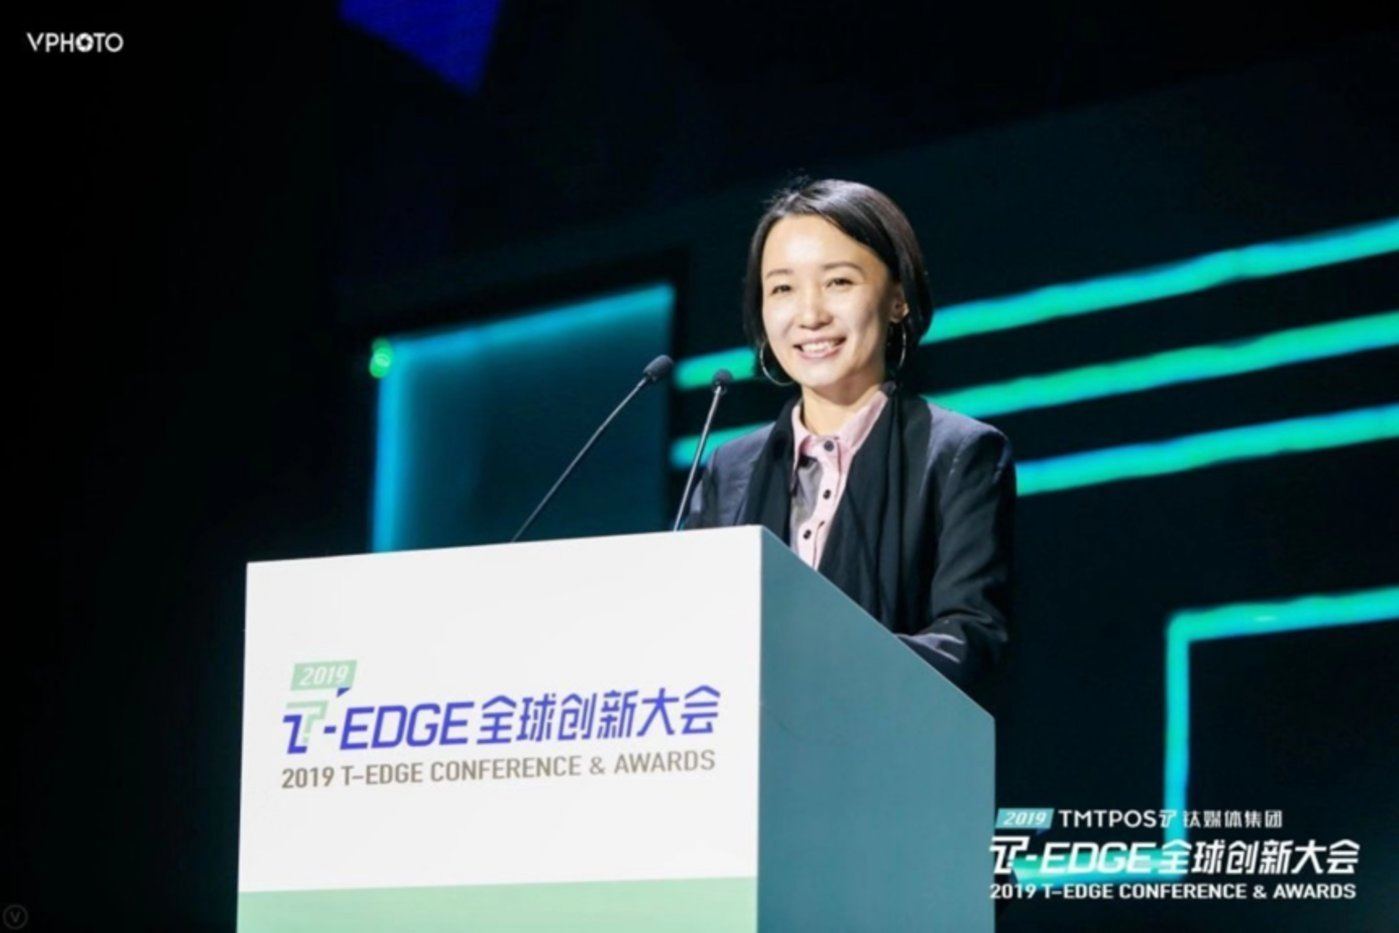 TMTPOST Group founder and CEO Zhao Hejuan makes welcoming remarks at T-EDGE 2019